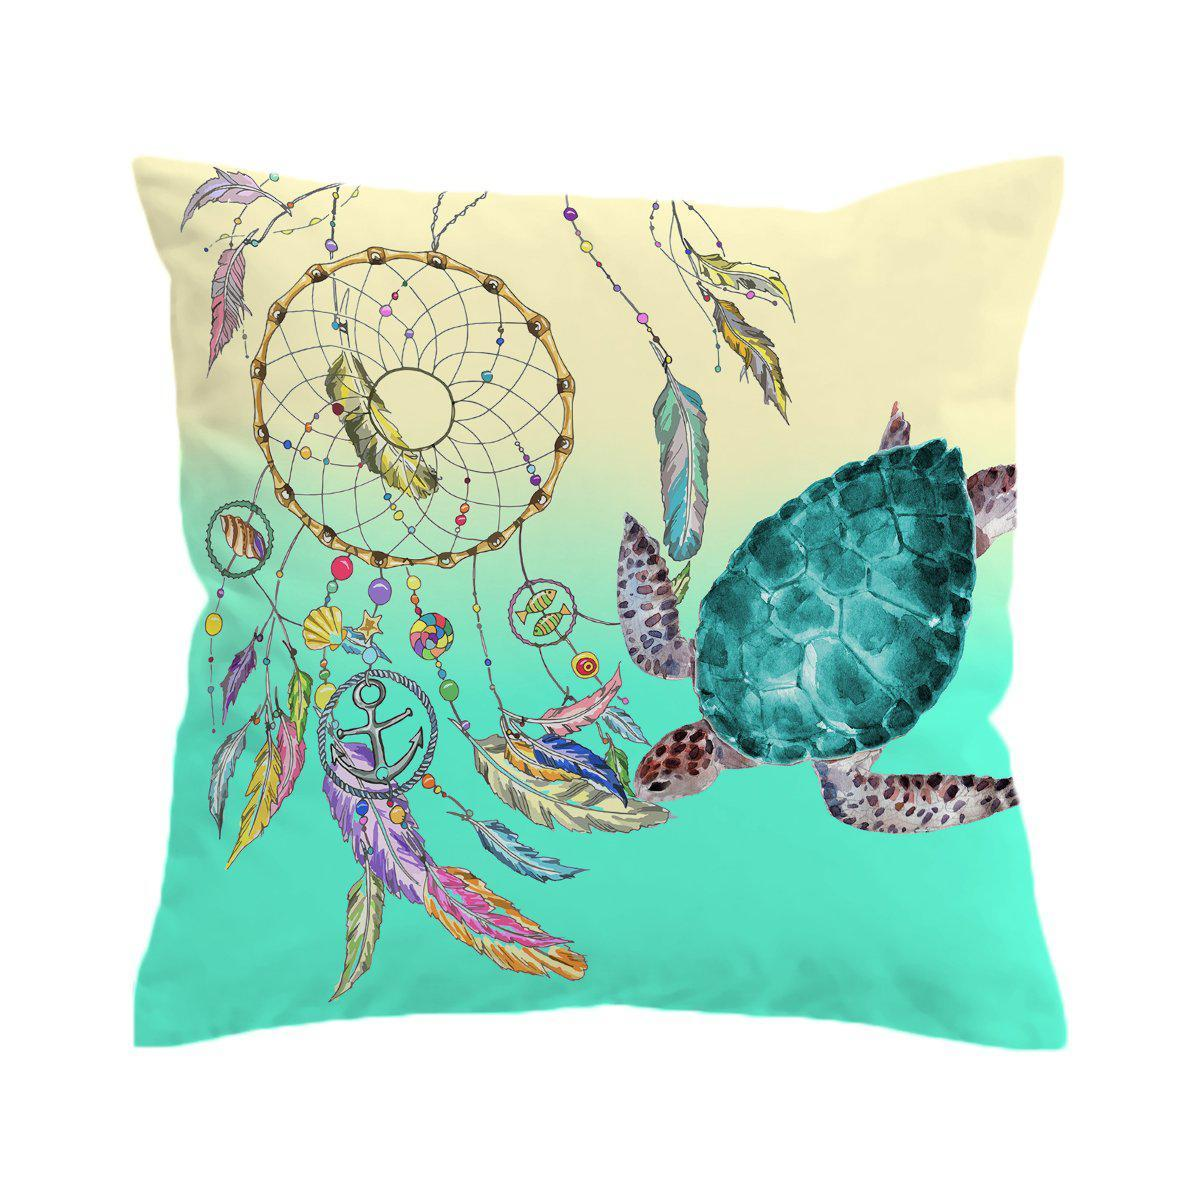 The Dreamcatcher and Sea Turtle Pillow Cover-Coastal Passion